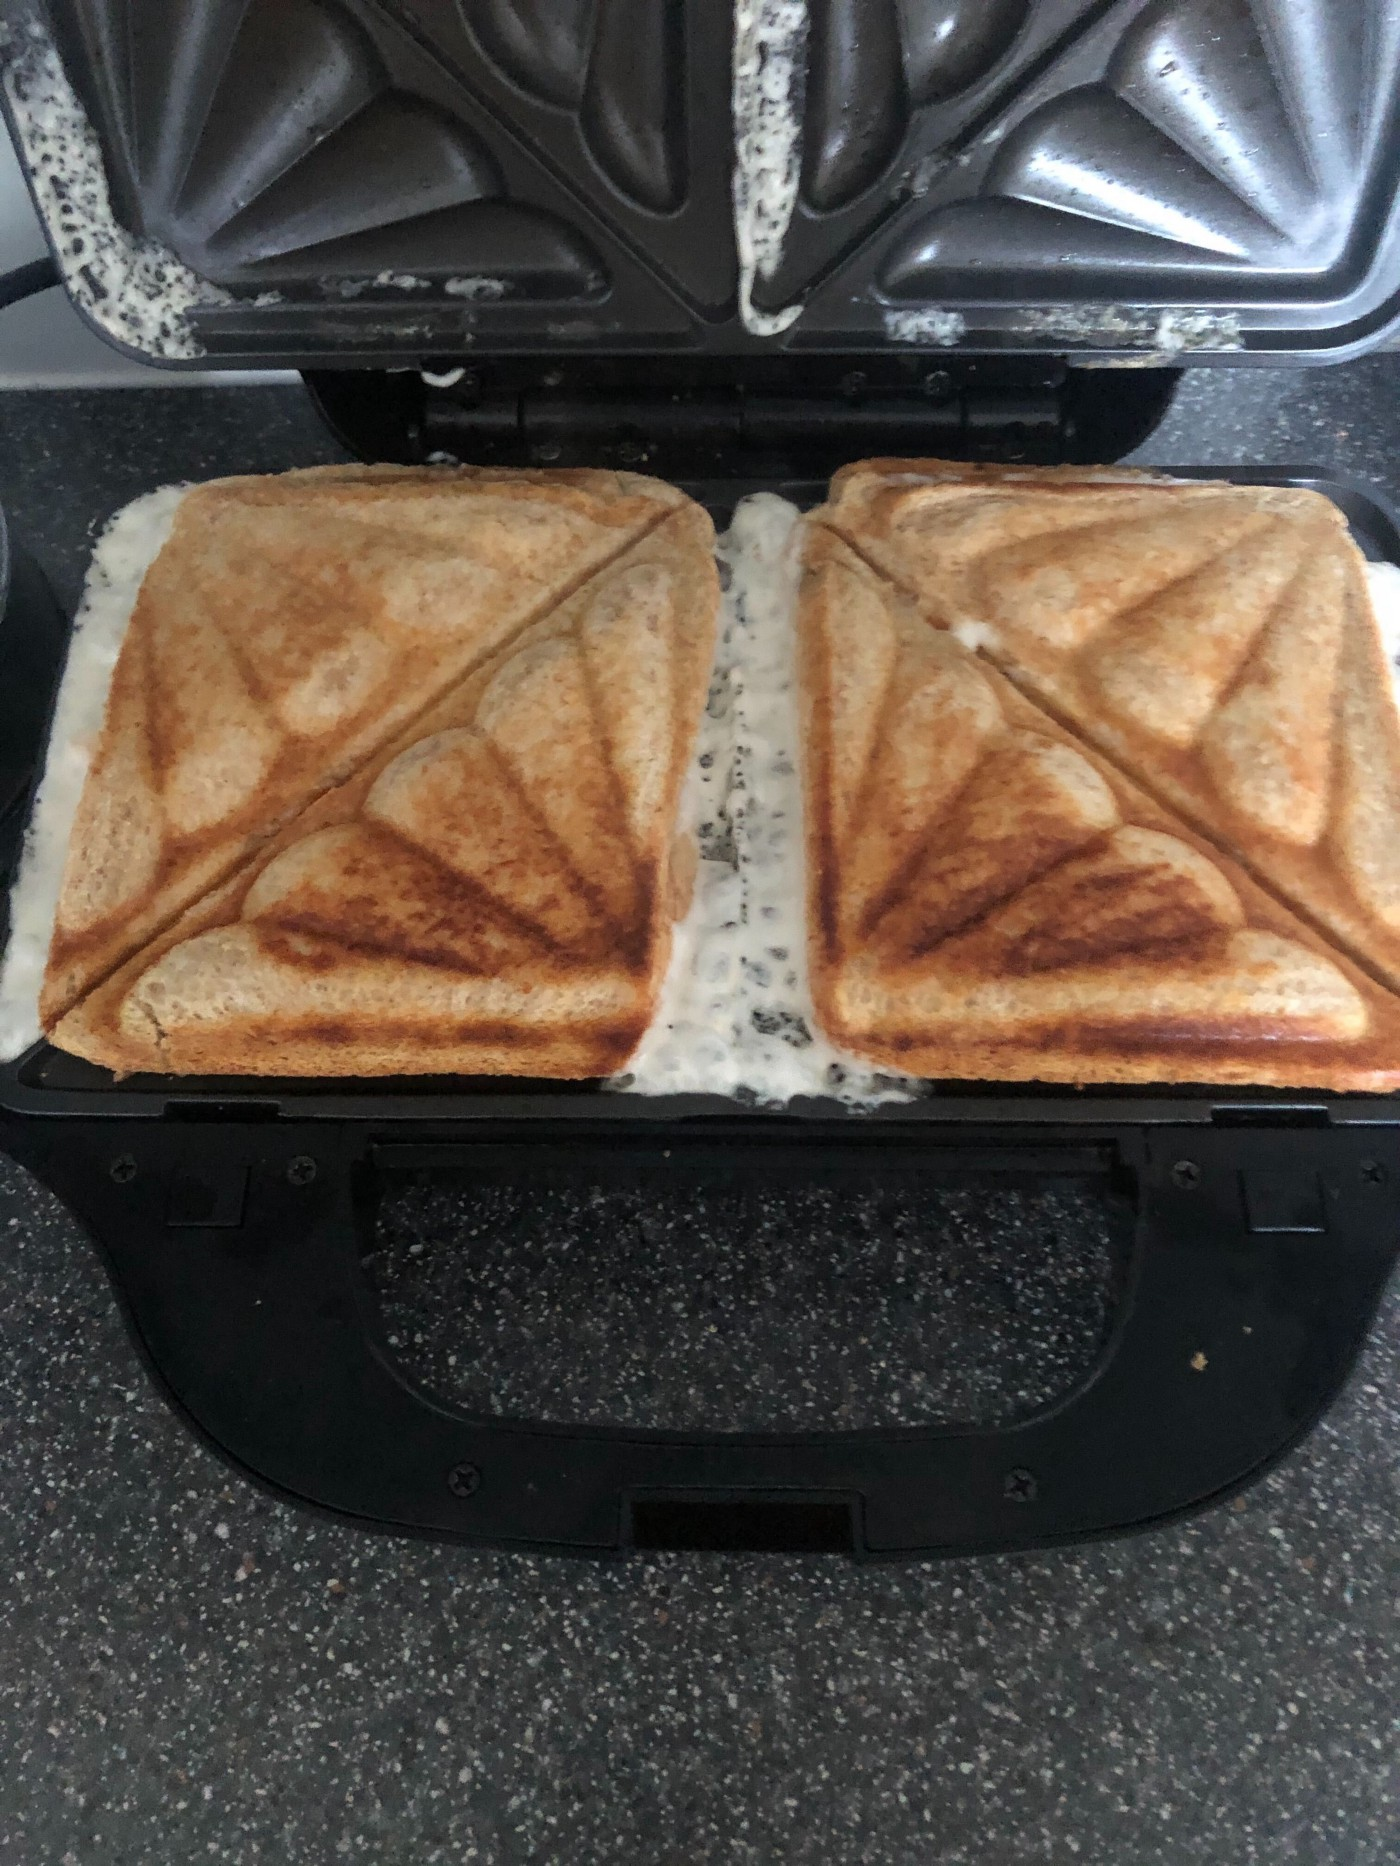 A toastie sandwich machine with two sandwiches leaking the filling all over the machine, leaving a mess.